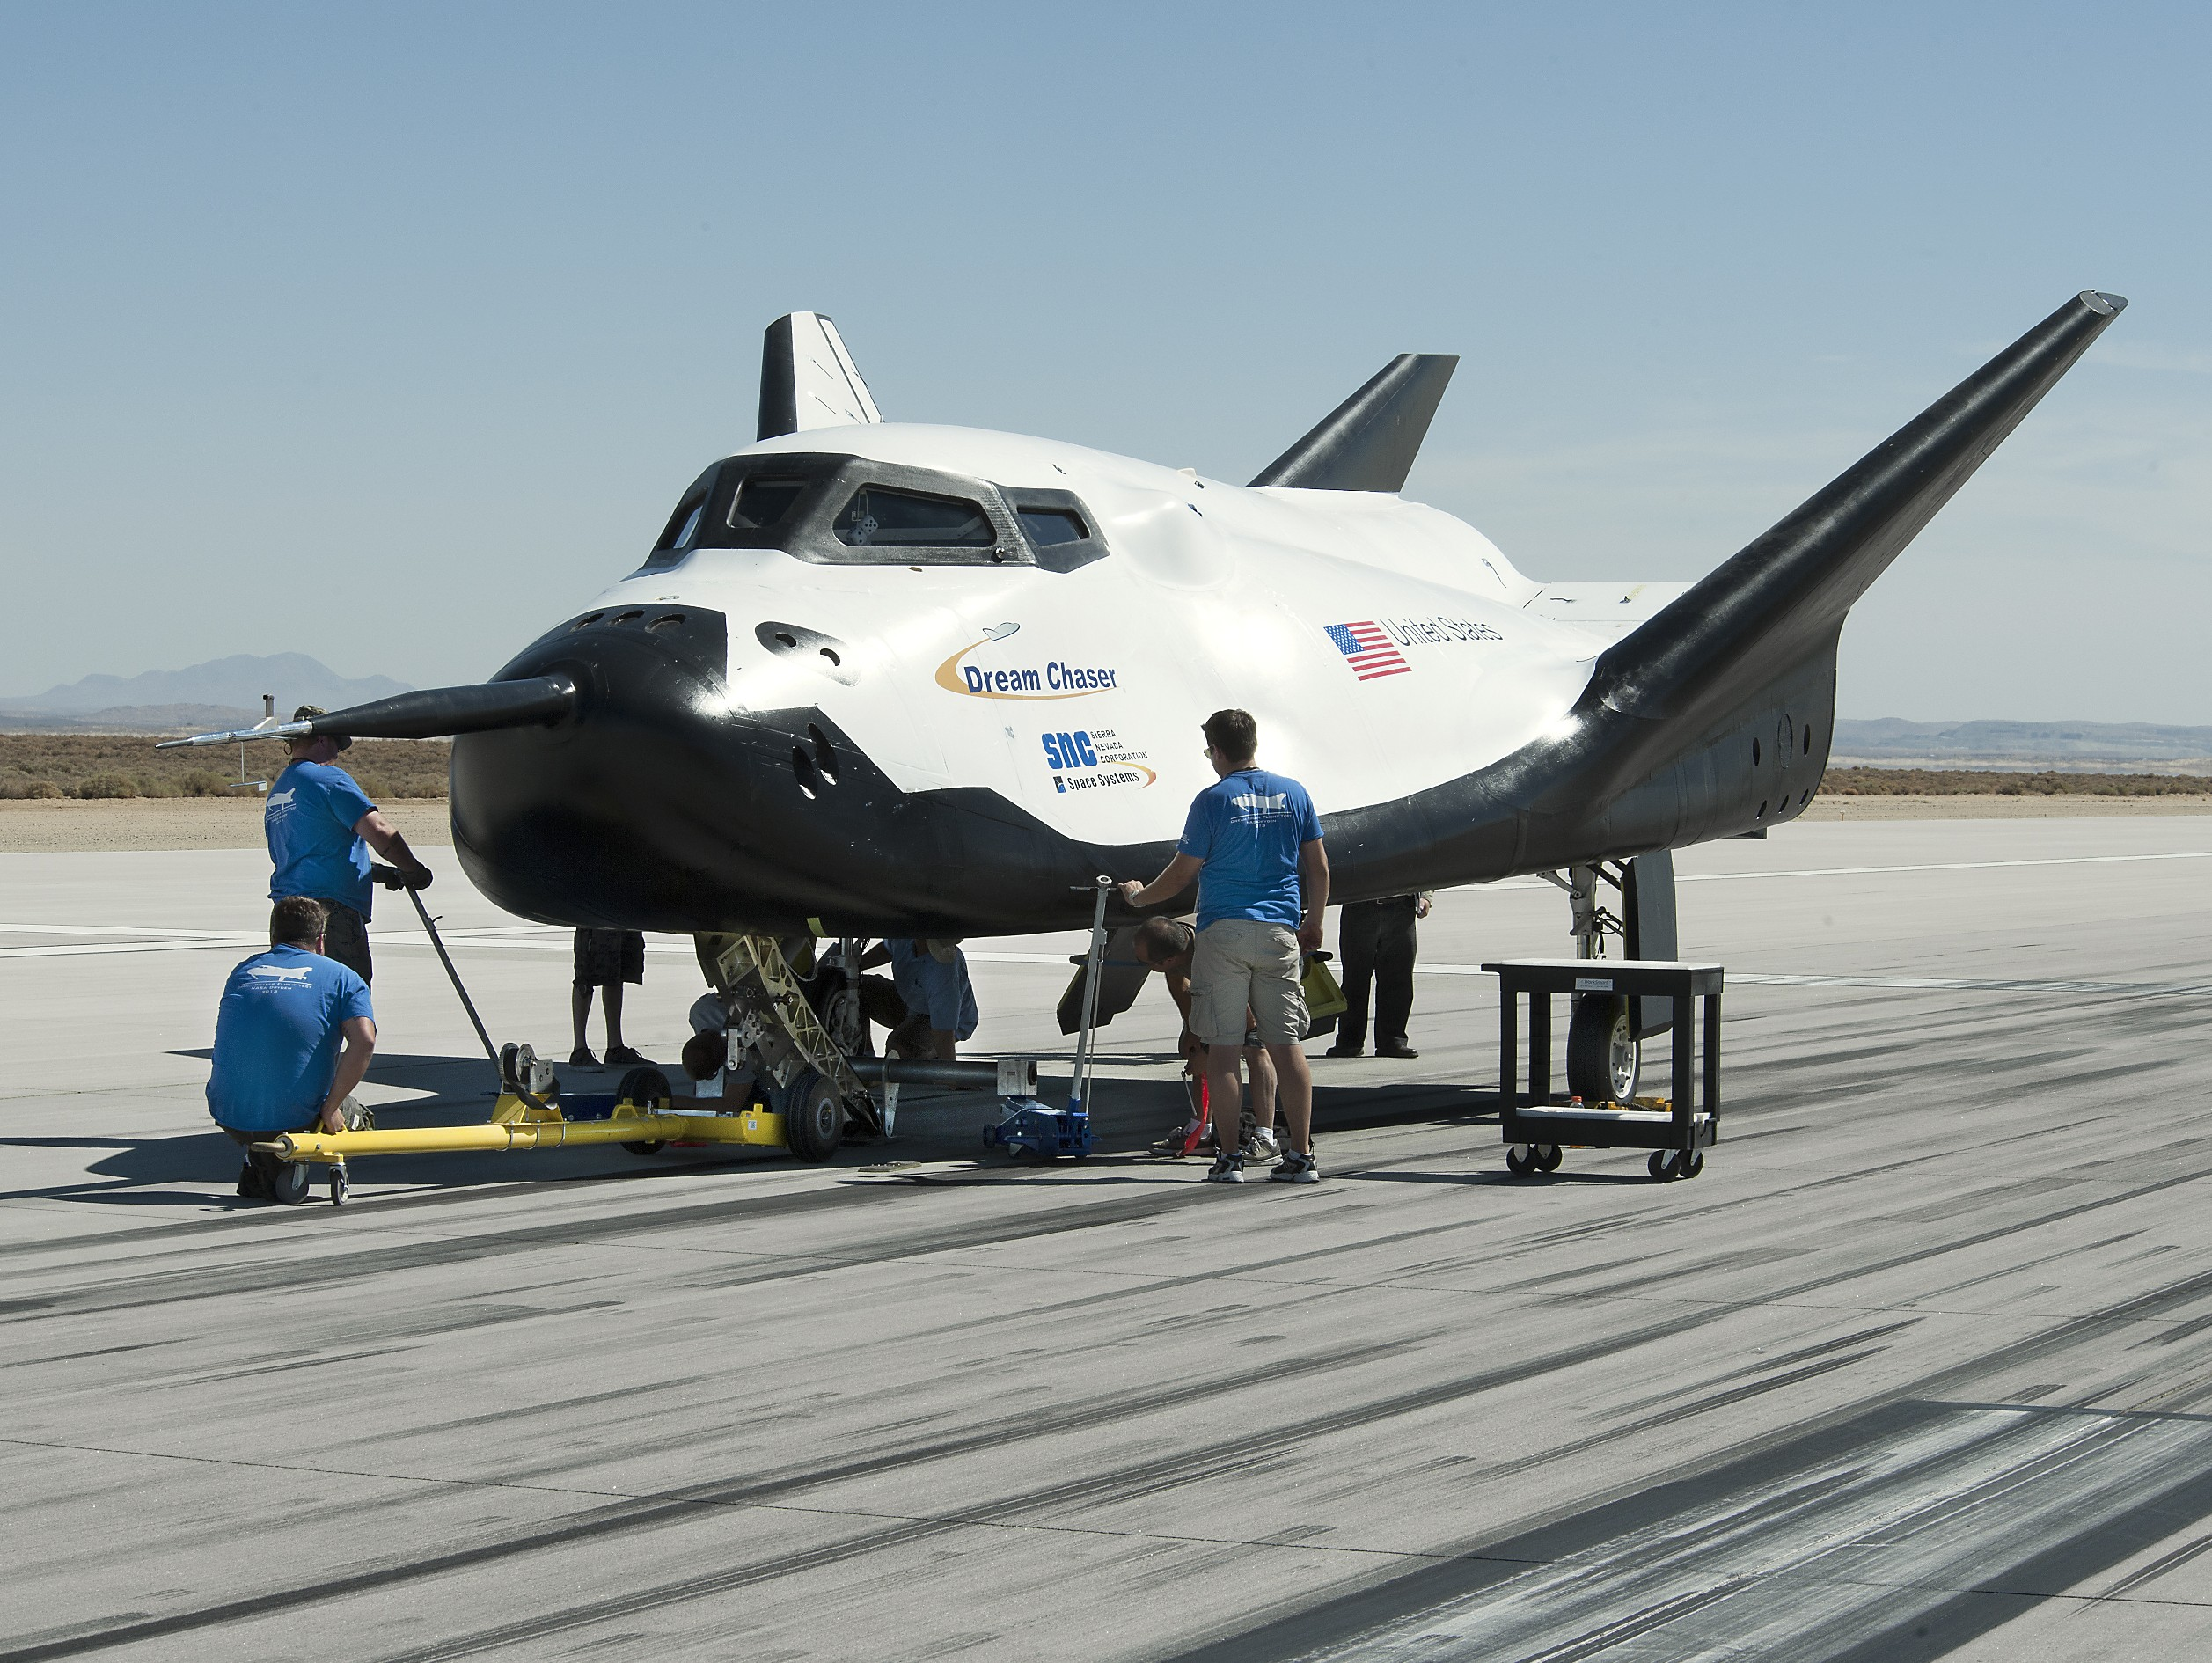 https://upload.wikimedia.org/wikipedia/commons/a/a8/Dream_Chaser_pre-drop_tests.7.jpg